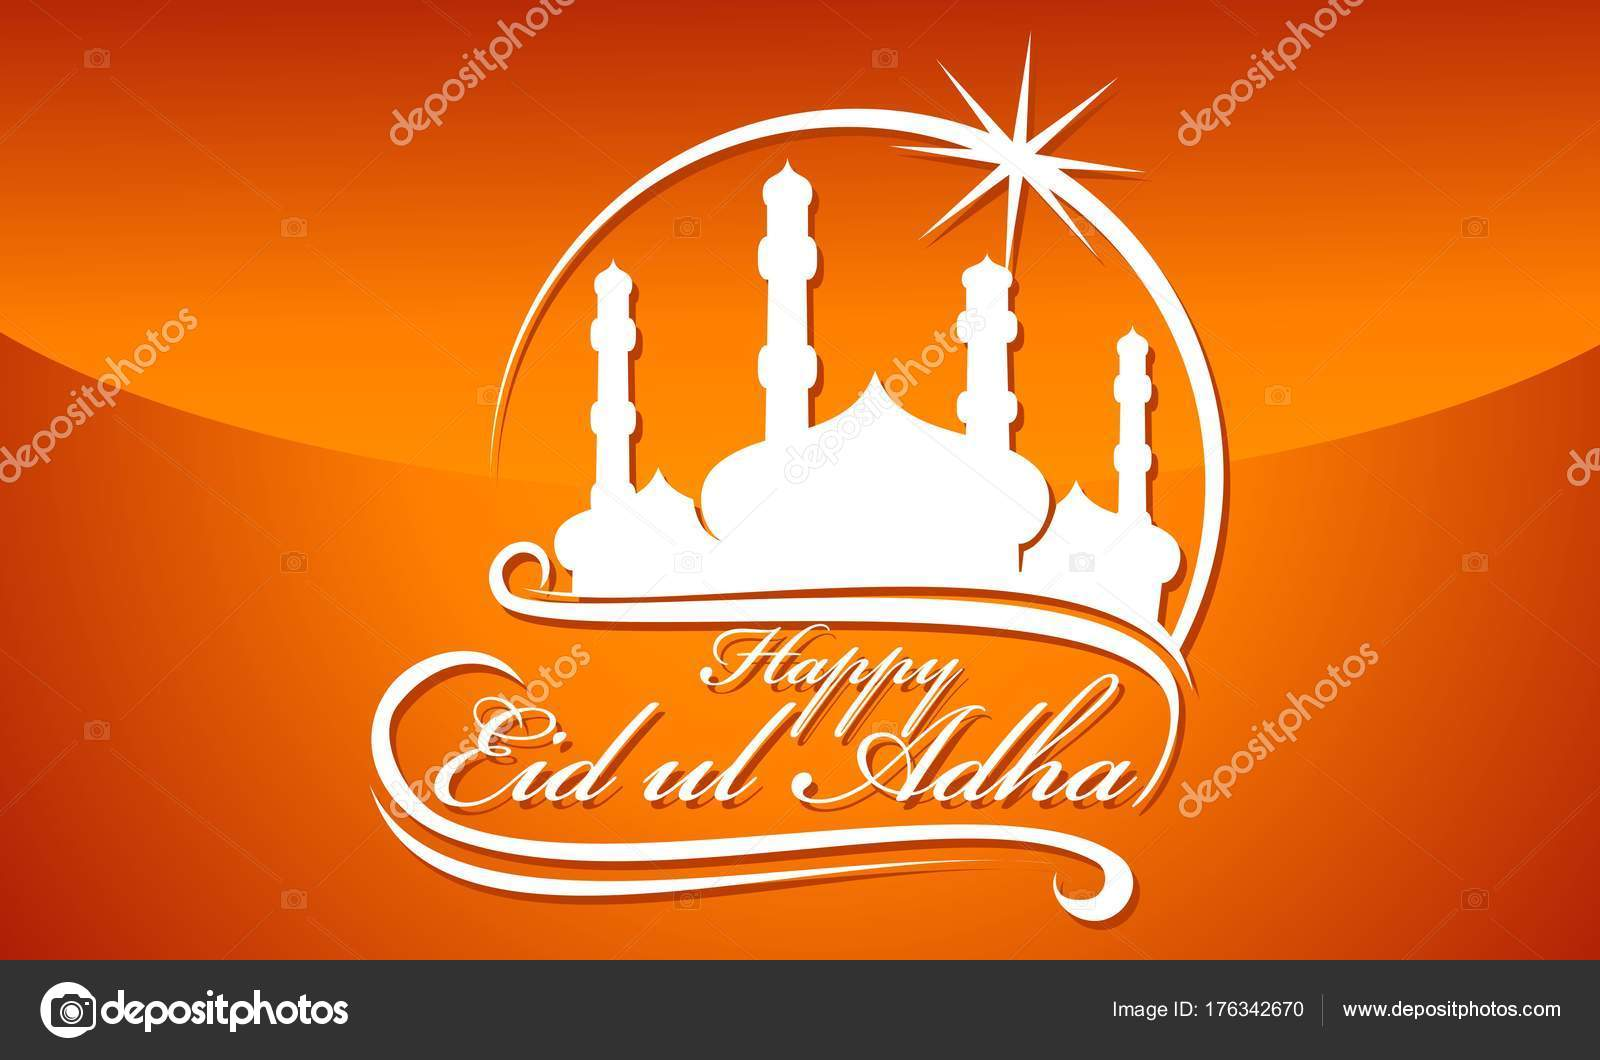 ᐈ idul adha greeting card stock icon royalty free idul adha backgrounds download on depositphotos https depositphotos com 176342670 stock illustration happy ied ul adha html